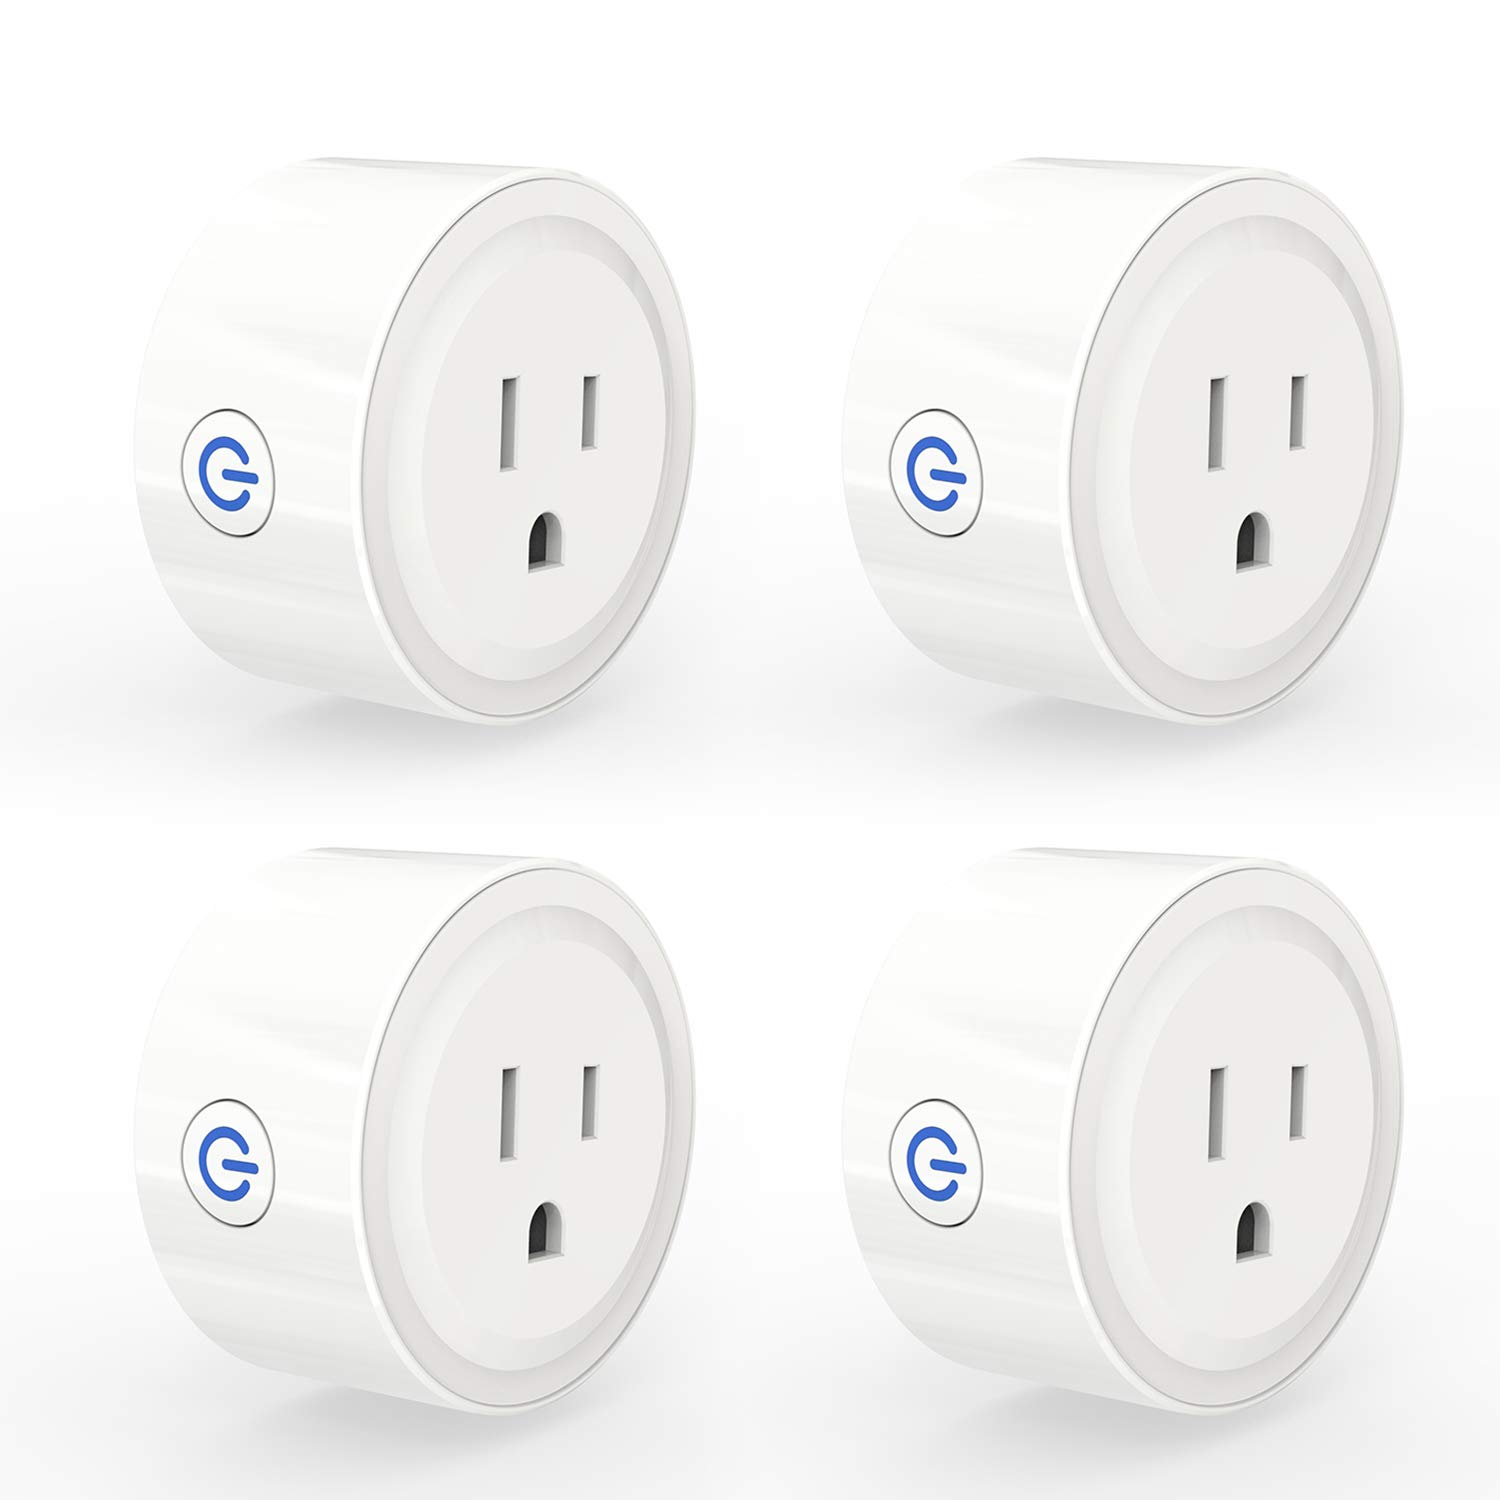 3Stone Smart Plug Mini, No Hub Required, Wi-Fi, Compatible with Amazon Alexa, Control your Devices from Anywhere (4 Pack)